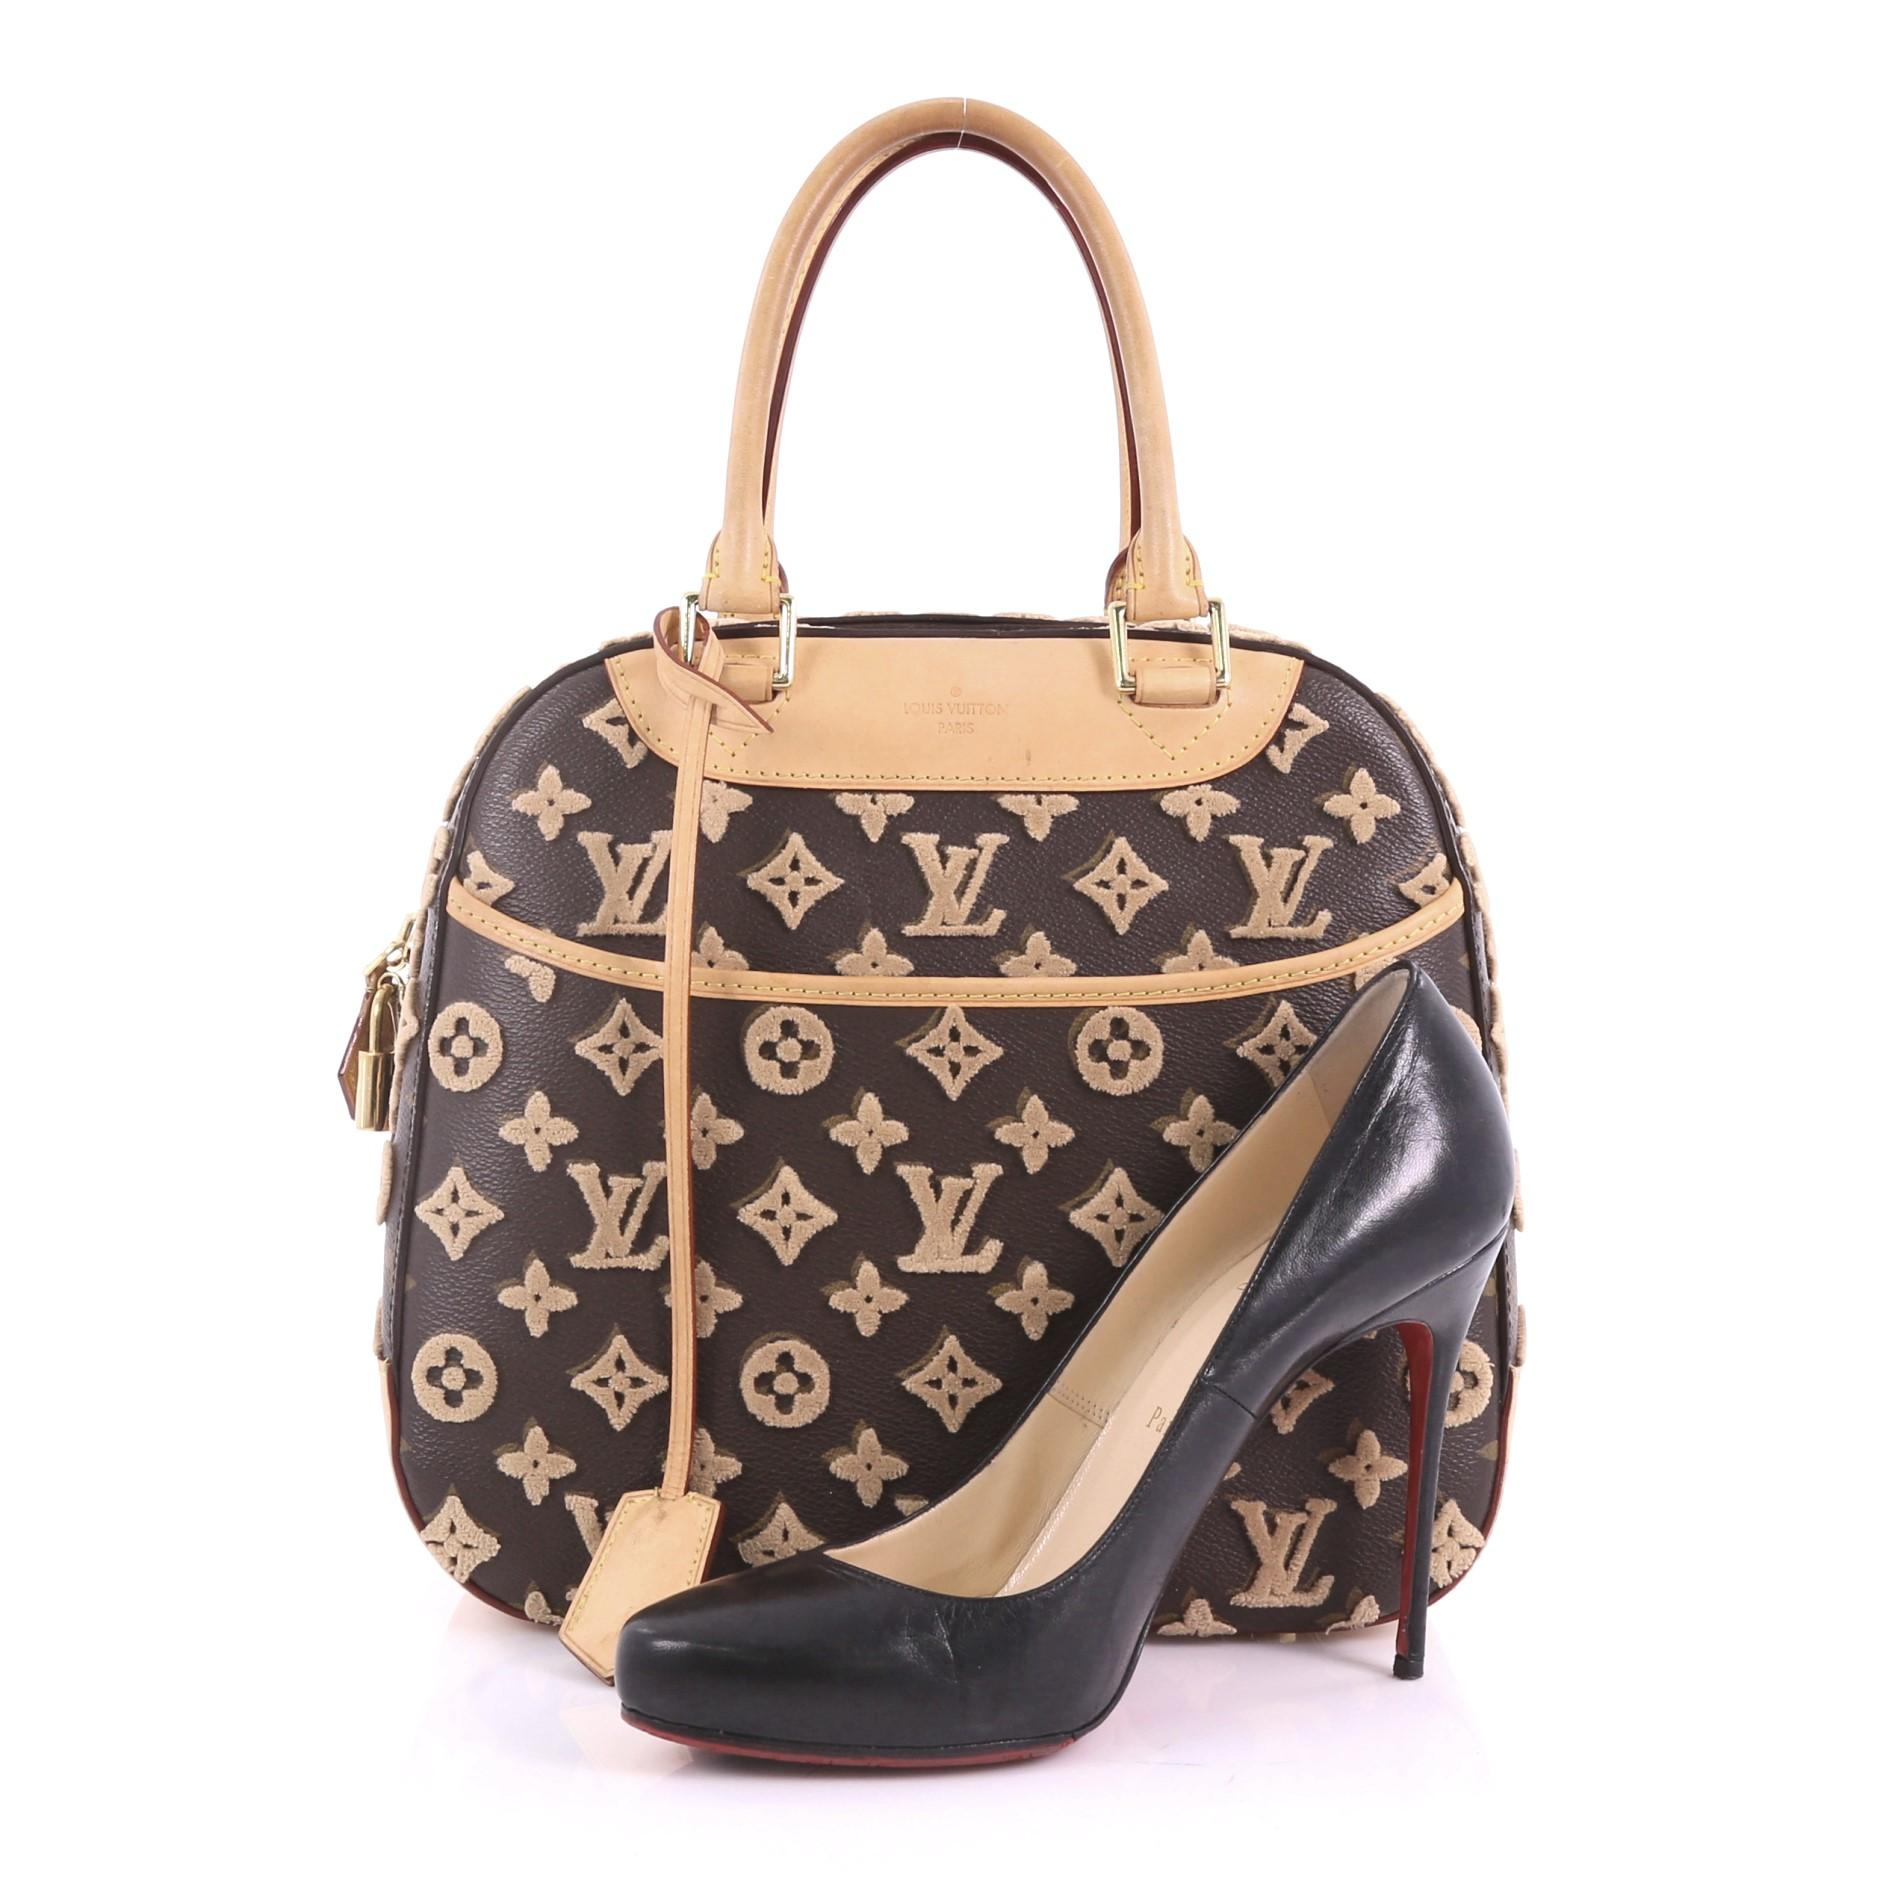 42c537100a36 Louis Vuitton Deauville Cube Bag Limited Edition Monogram Canvas Tuffetage  at 1stdibs